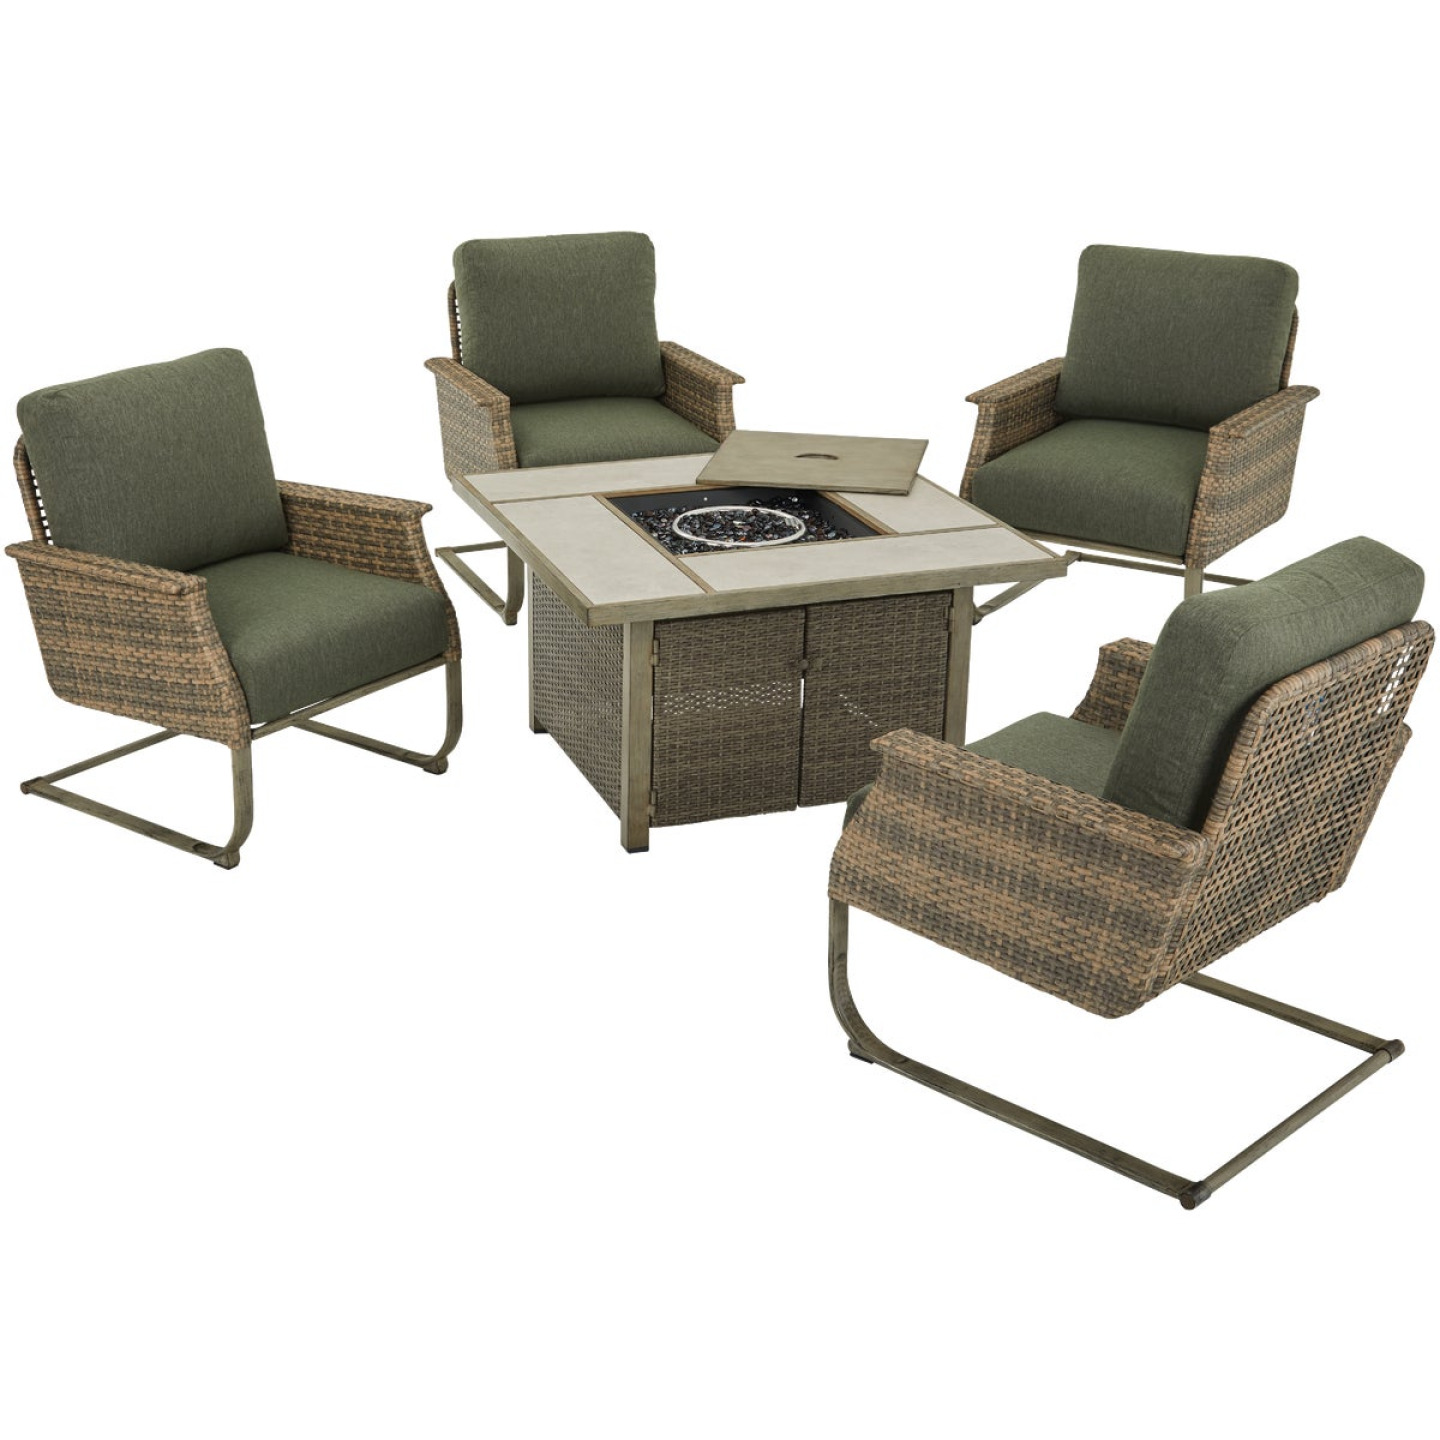 Pacific Casual Shady Creek 5-Piece Gas Fire Pit Chat Set Image 1